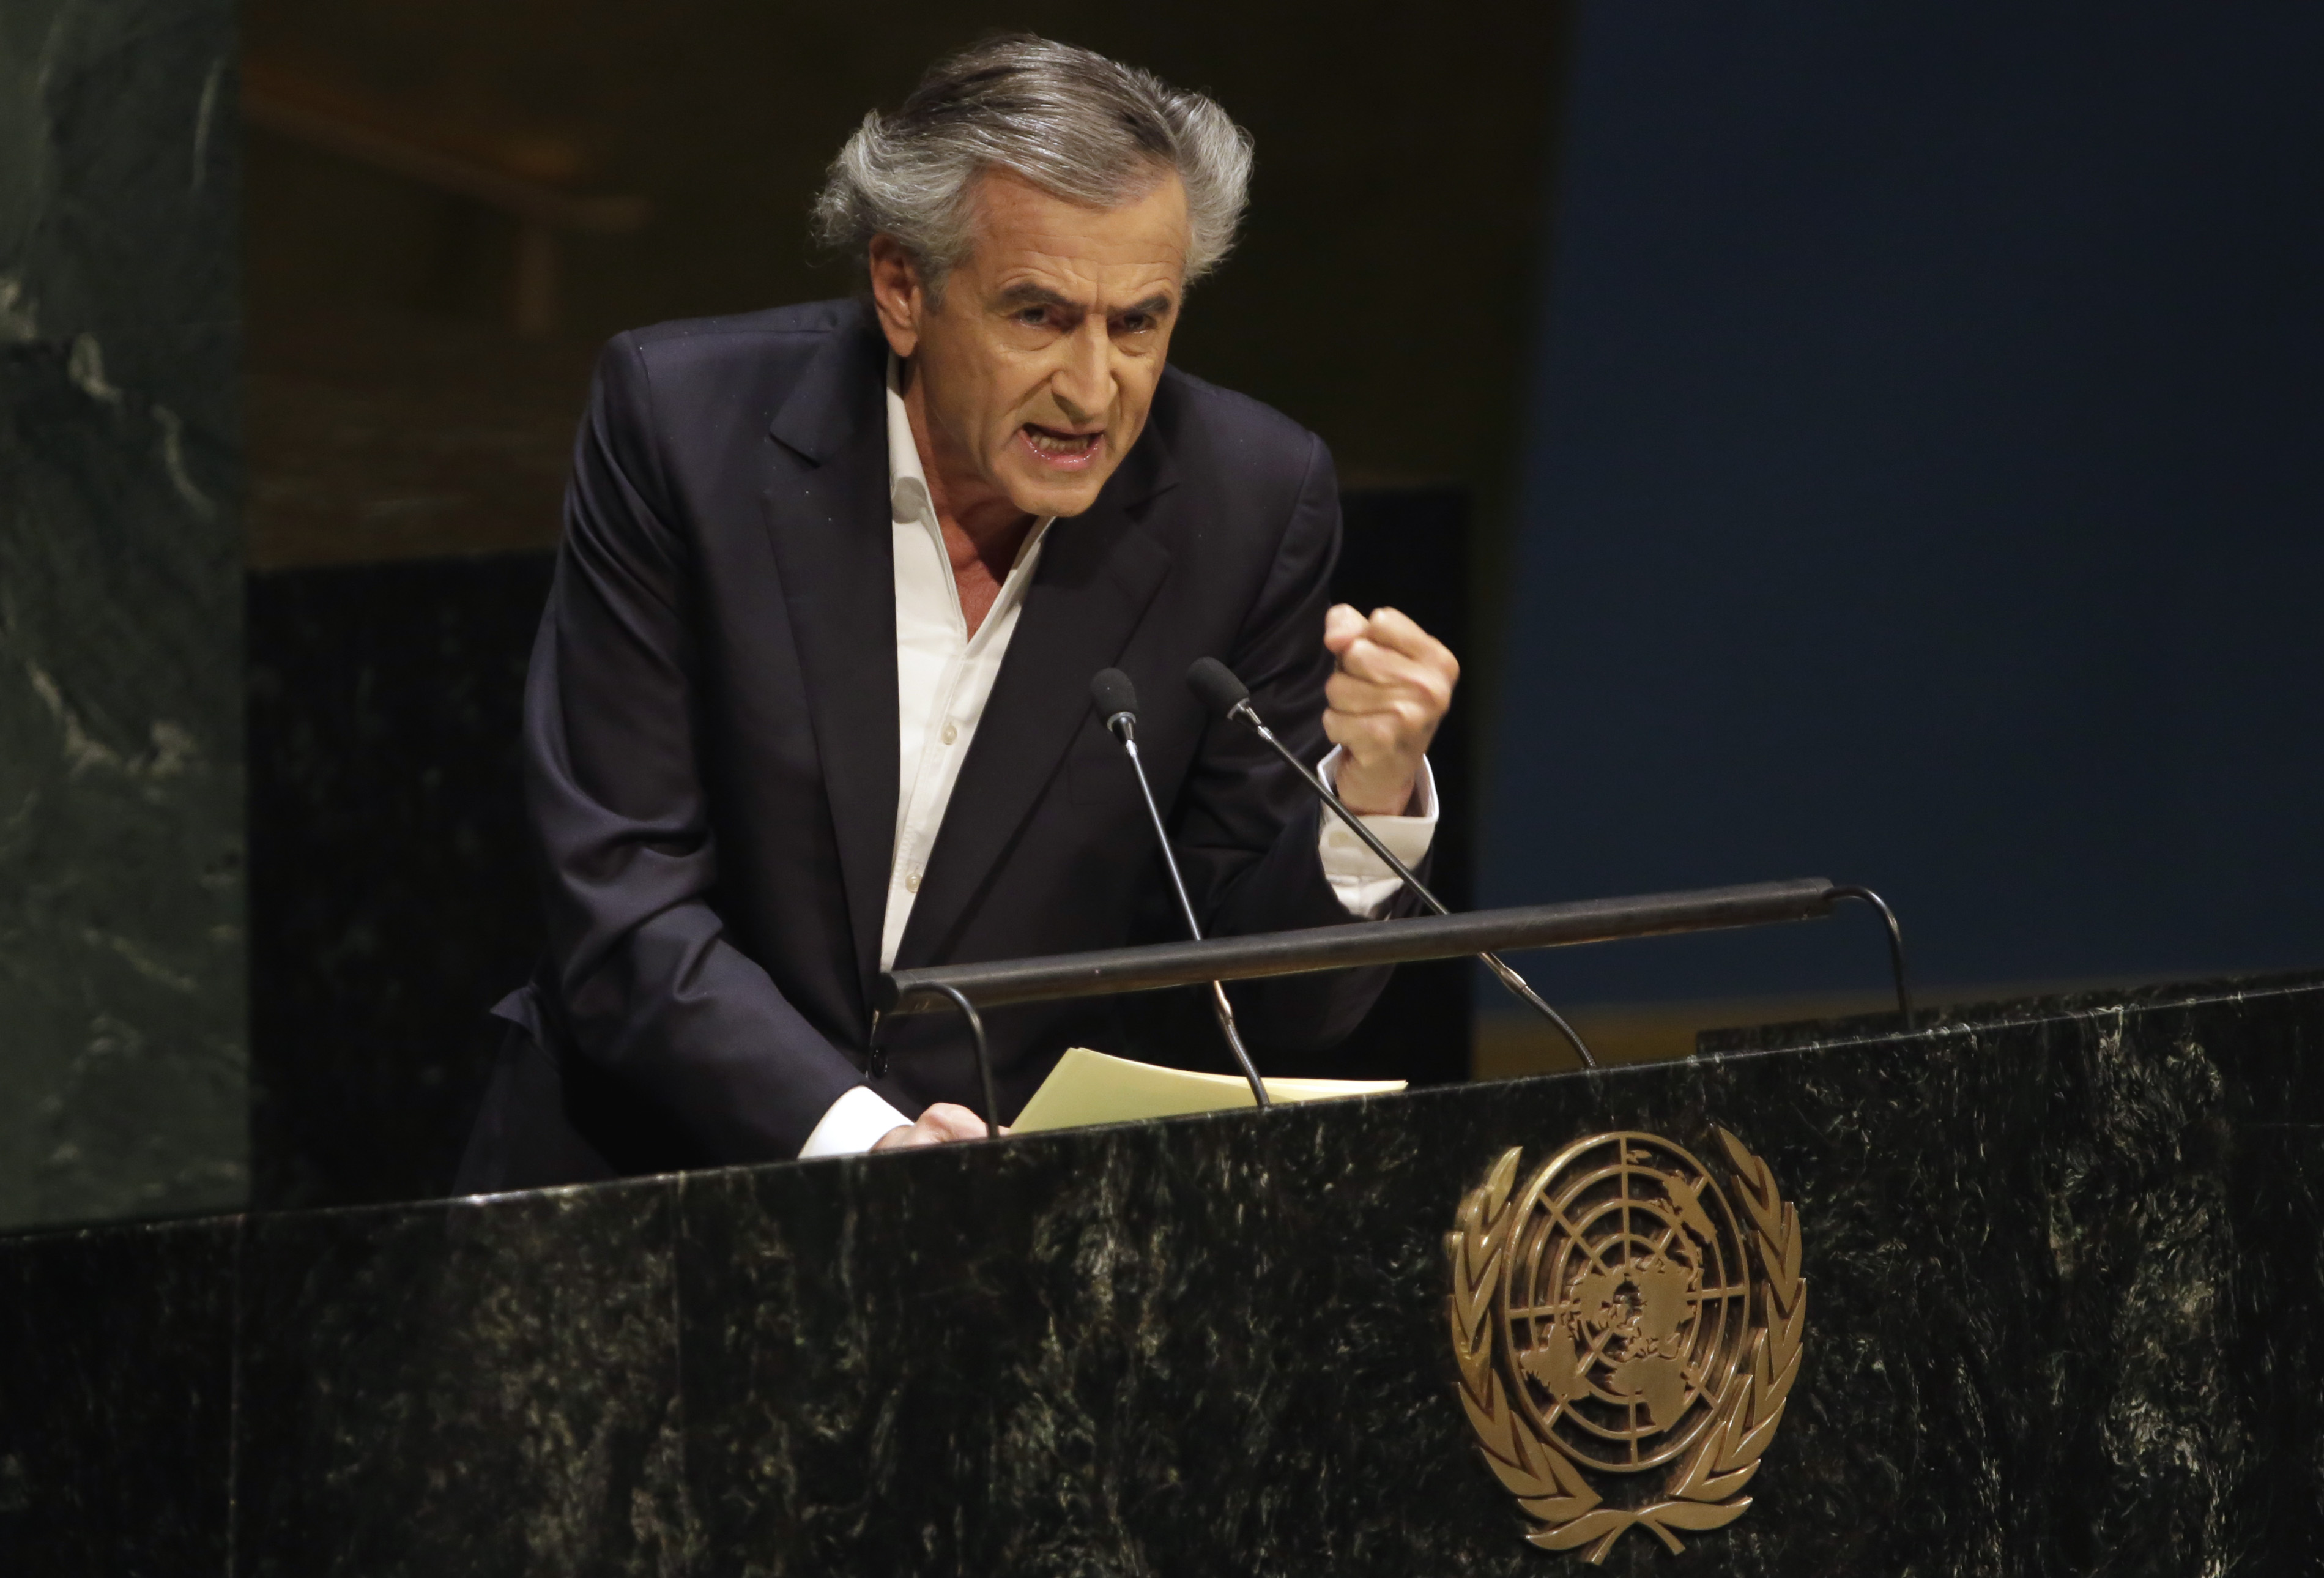 French philosopher and writer Bernard-Henri Levy addresses the United Nations General Assembly, Thursday, Jan. 22, 2015.